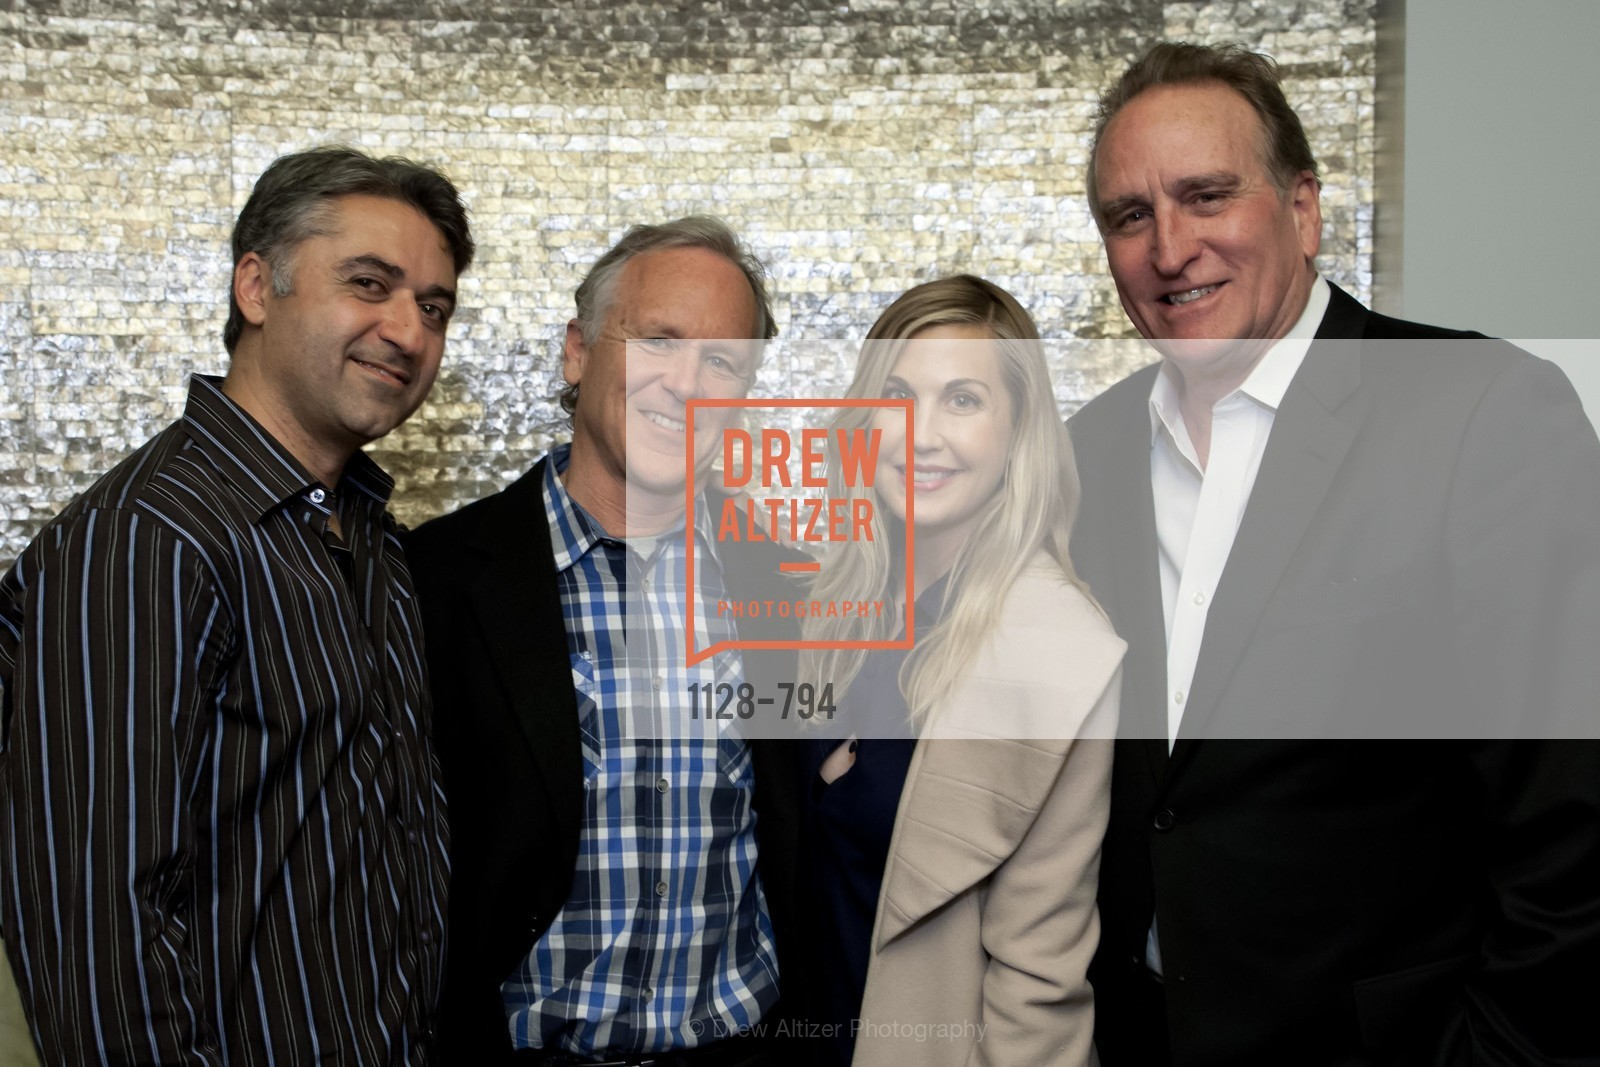 Hooman Khalili, Heidi Pettit, Mark Wagoner, EPI CENTER MedSpa Anniversary and Launch of REPLETE - Evening Celebration, US, April 22nd, 2015,Drew Altizer, Drew Altizer Photography, full-service agency, private events, San Francisco photographer, photographer california